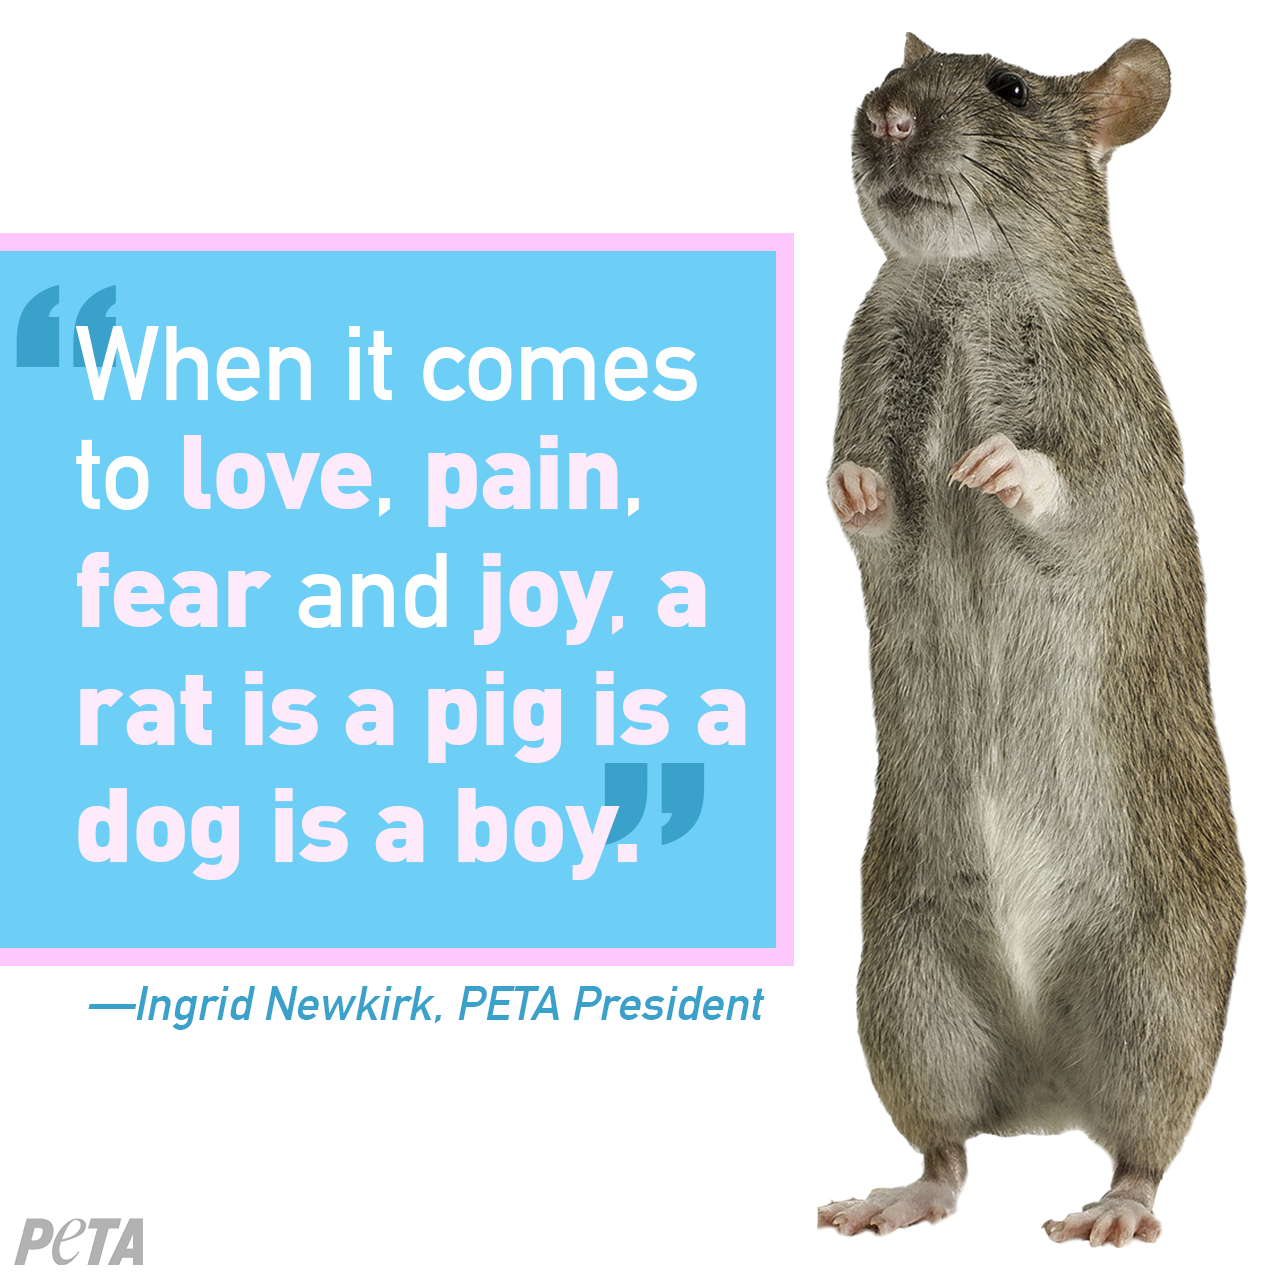 A Rat Is a Pig Is a Dog Is a Boy | Animals | Animal